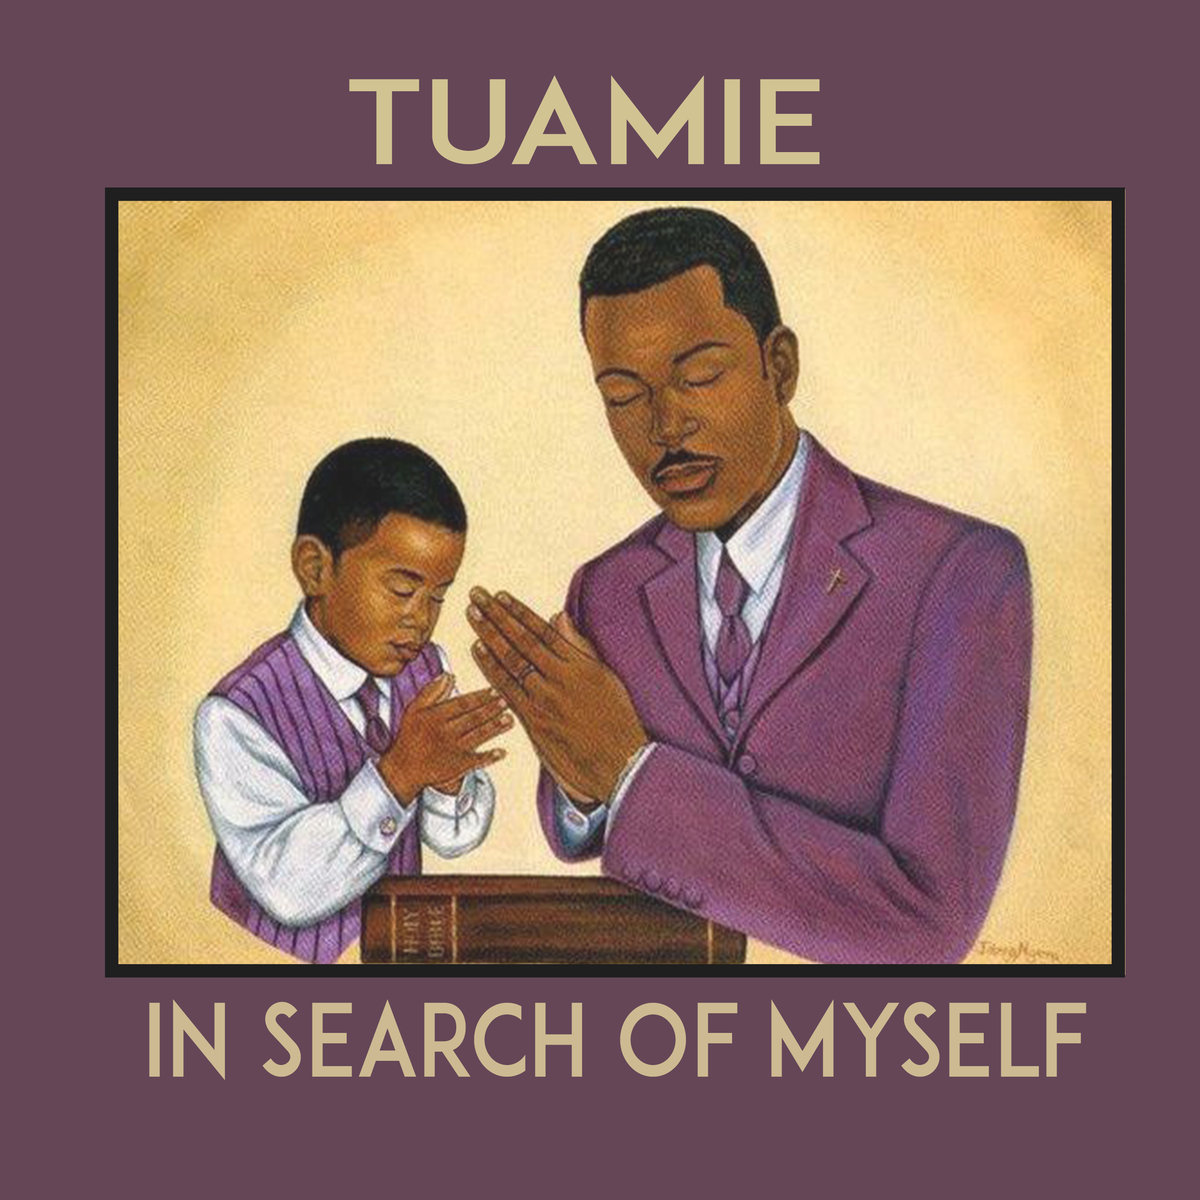 TUAMIE – In Search OfMyself